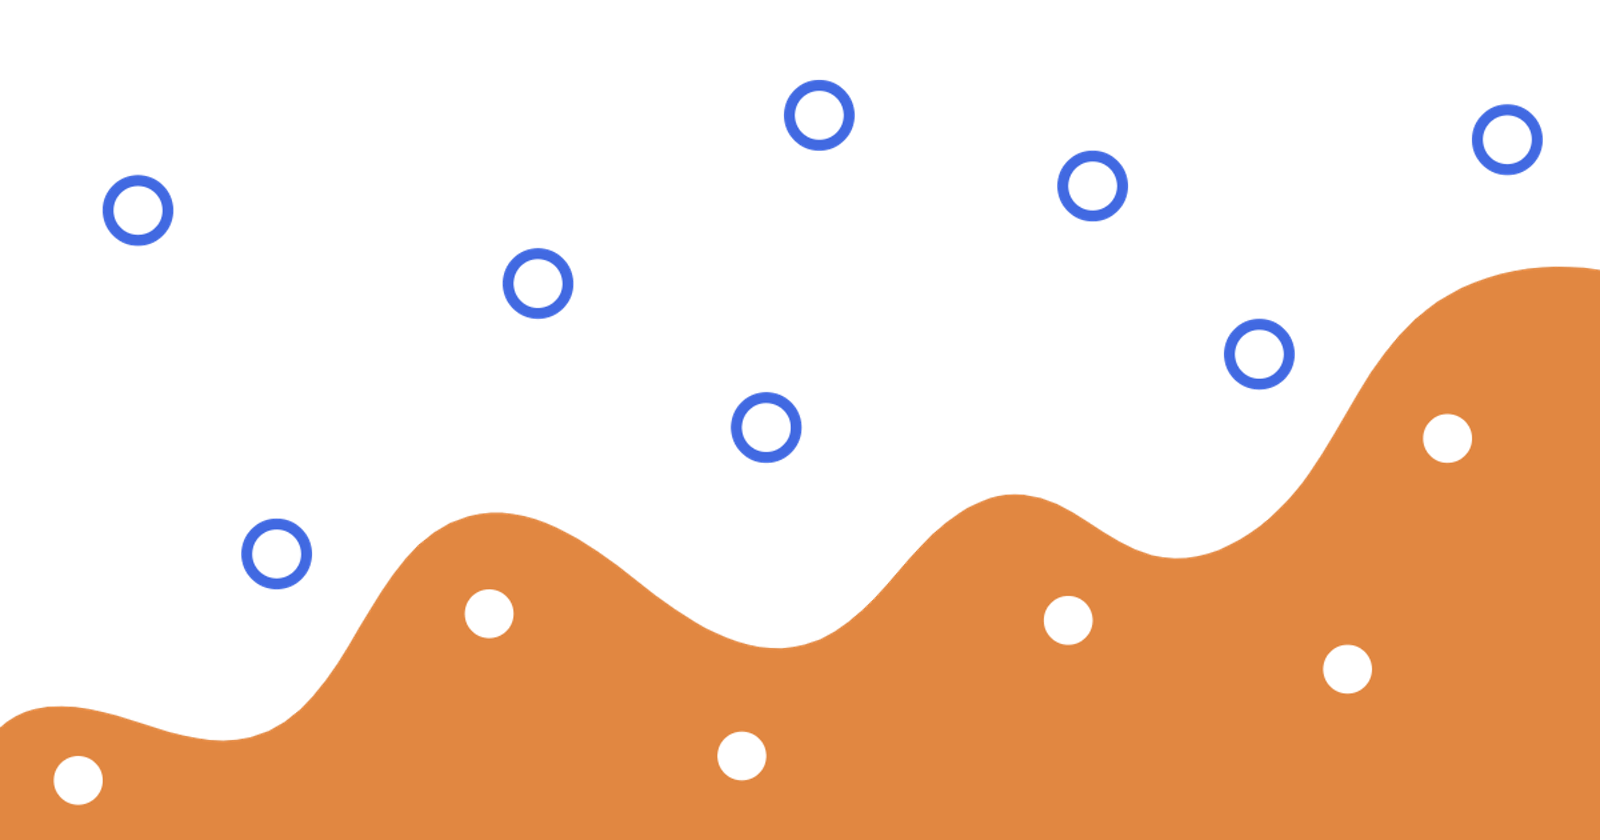 ISLR Chapter 9—Support Vector Machines